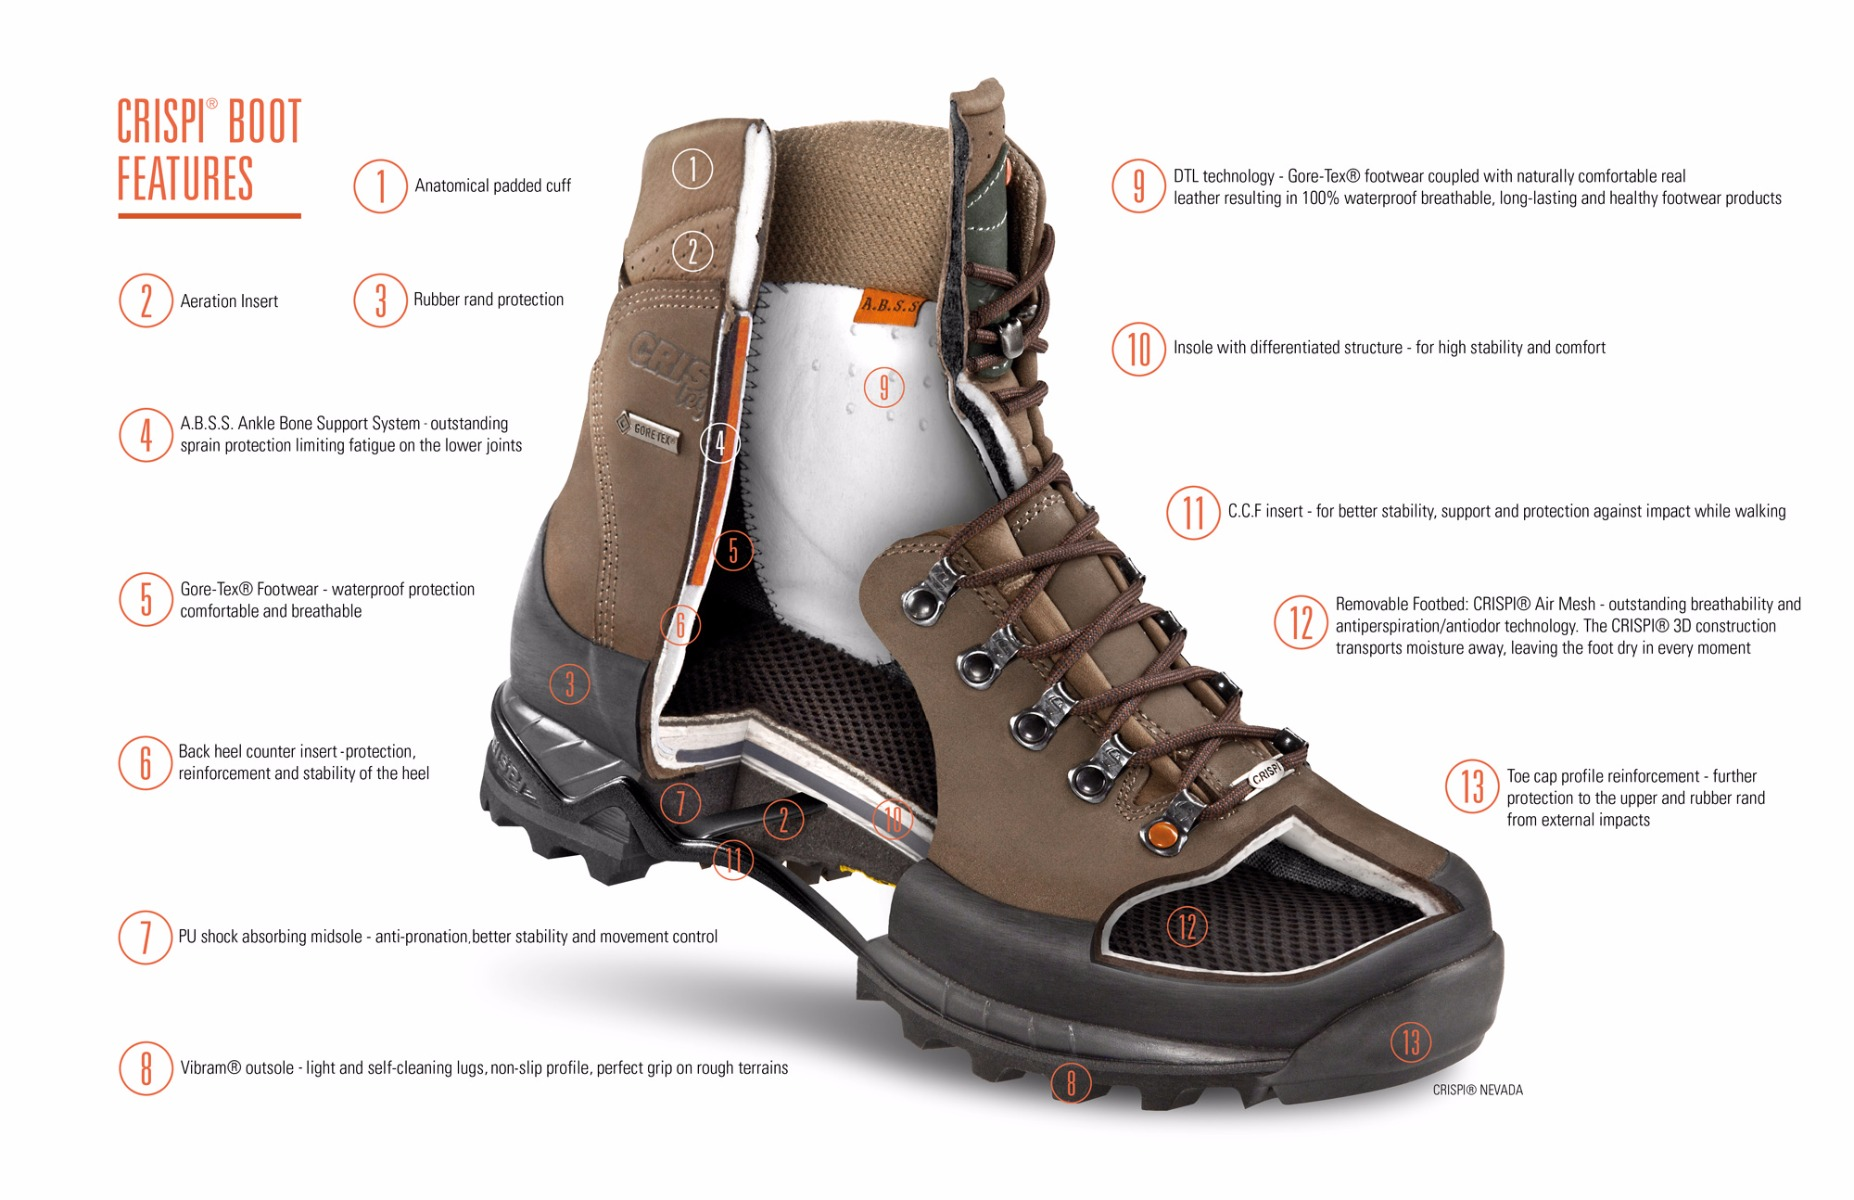 Sportsman Gift Guide - Boots